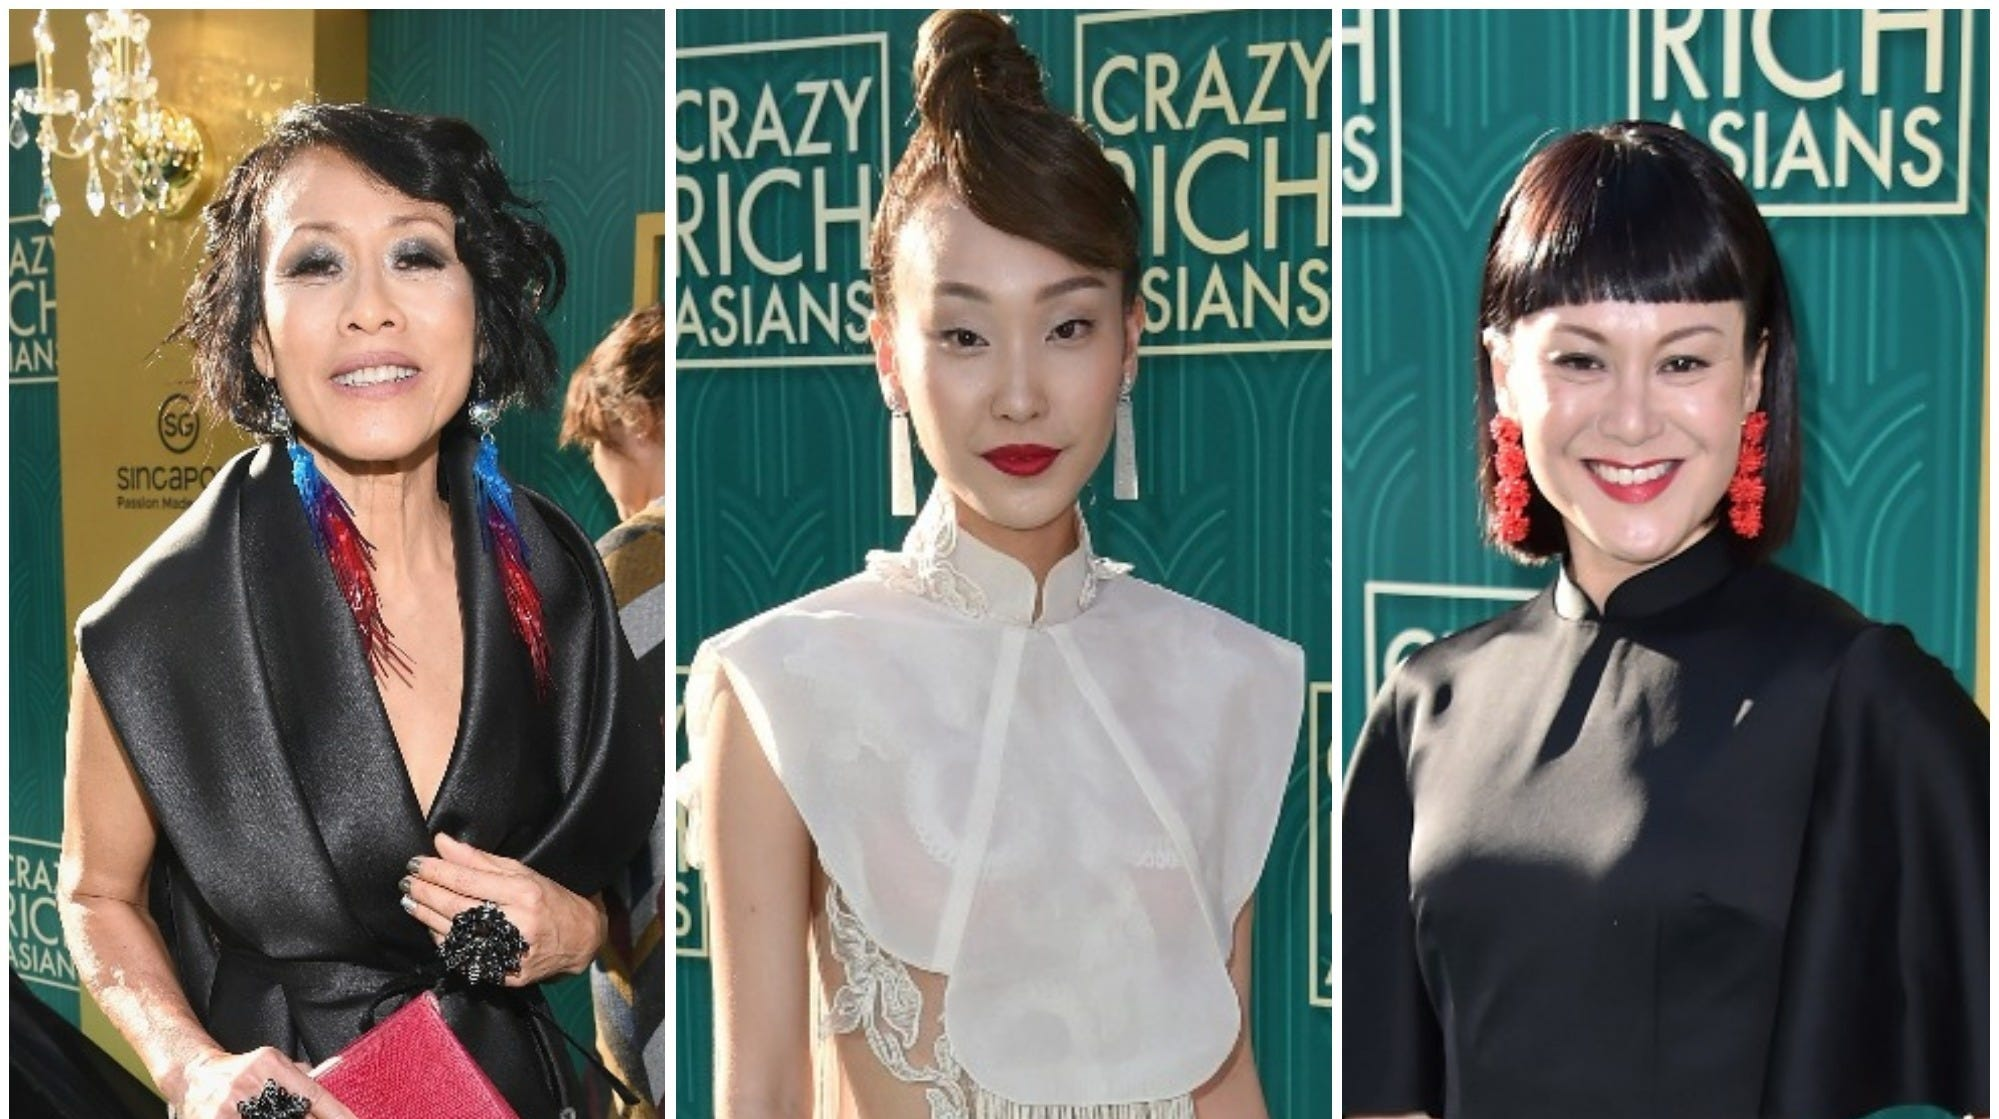 """Tan Kheng Hua, Constance Lau and Janice Koh are three of the """"Crazy Rich Asians"""" stars who opted to wear outfits by Asian designers at their film's premiere in Hollywood."""